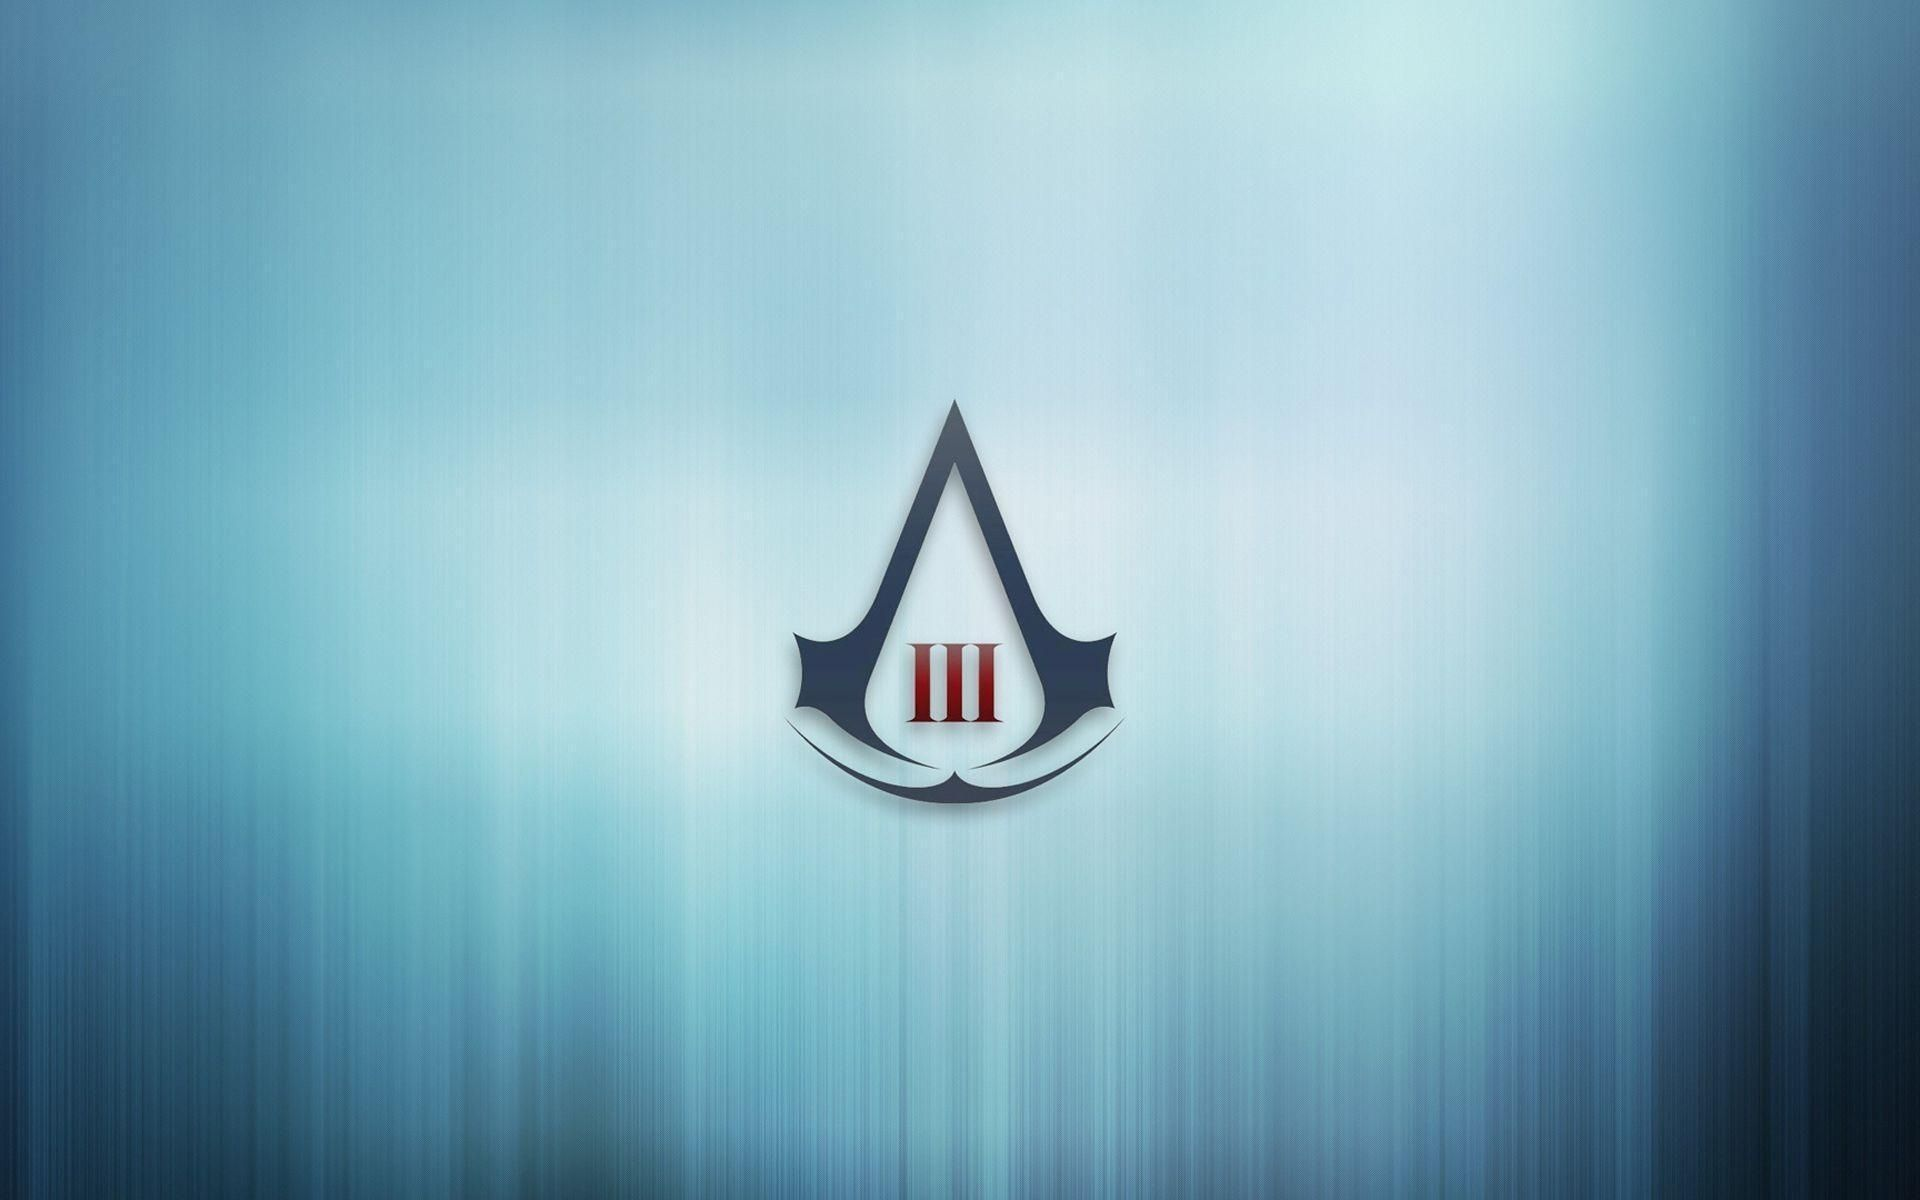 10 Top Assassin S Creed Logo Wallpaper Hd Full Hd 1080p For Pc